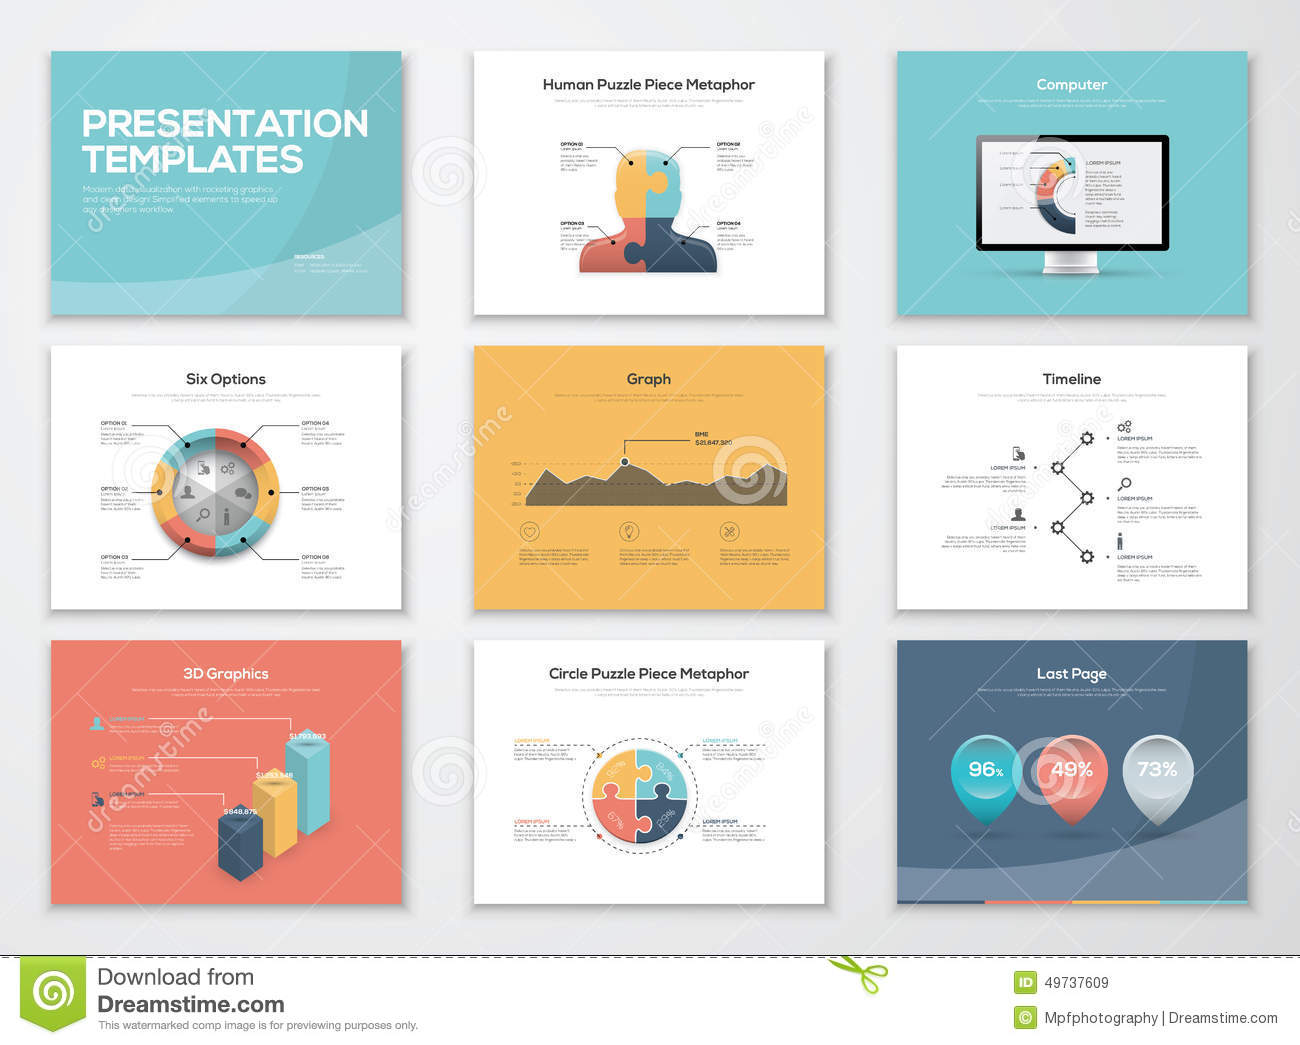 Business presentation templates and infographics vector elements business presentation templates and infographics vector elements friedricerecipe Gallery